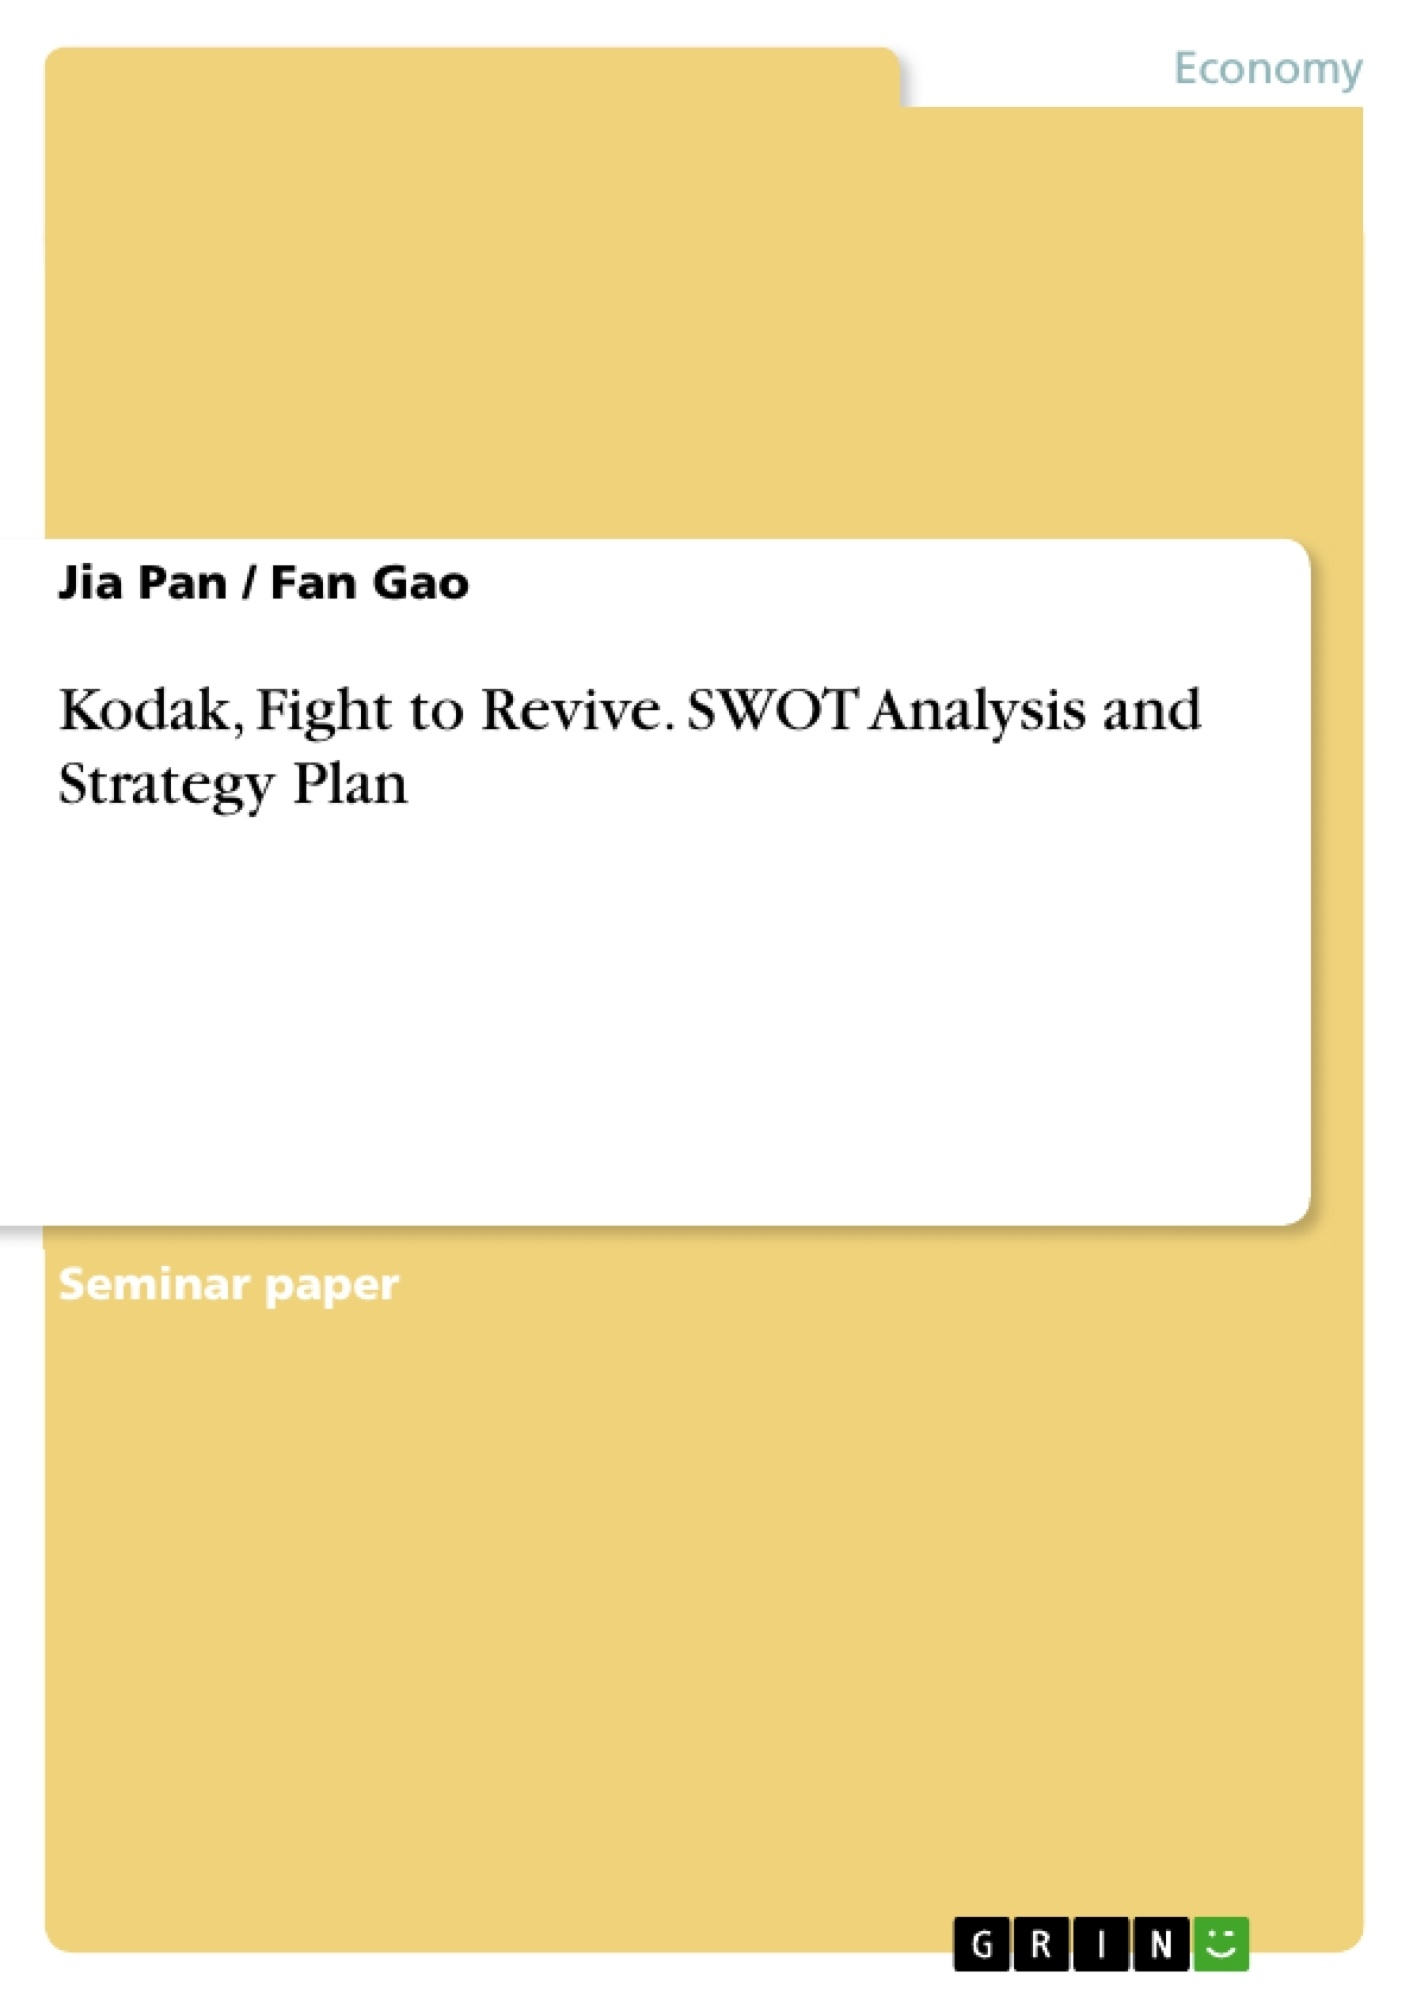 Title: Kodak, Fight to Revive. SWOT Analysis and Strategy Plan